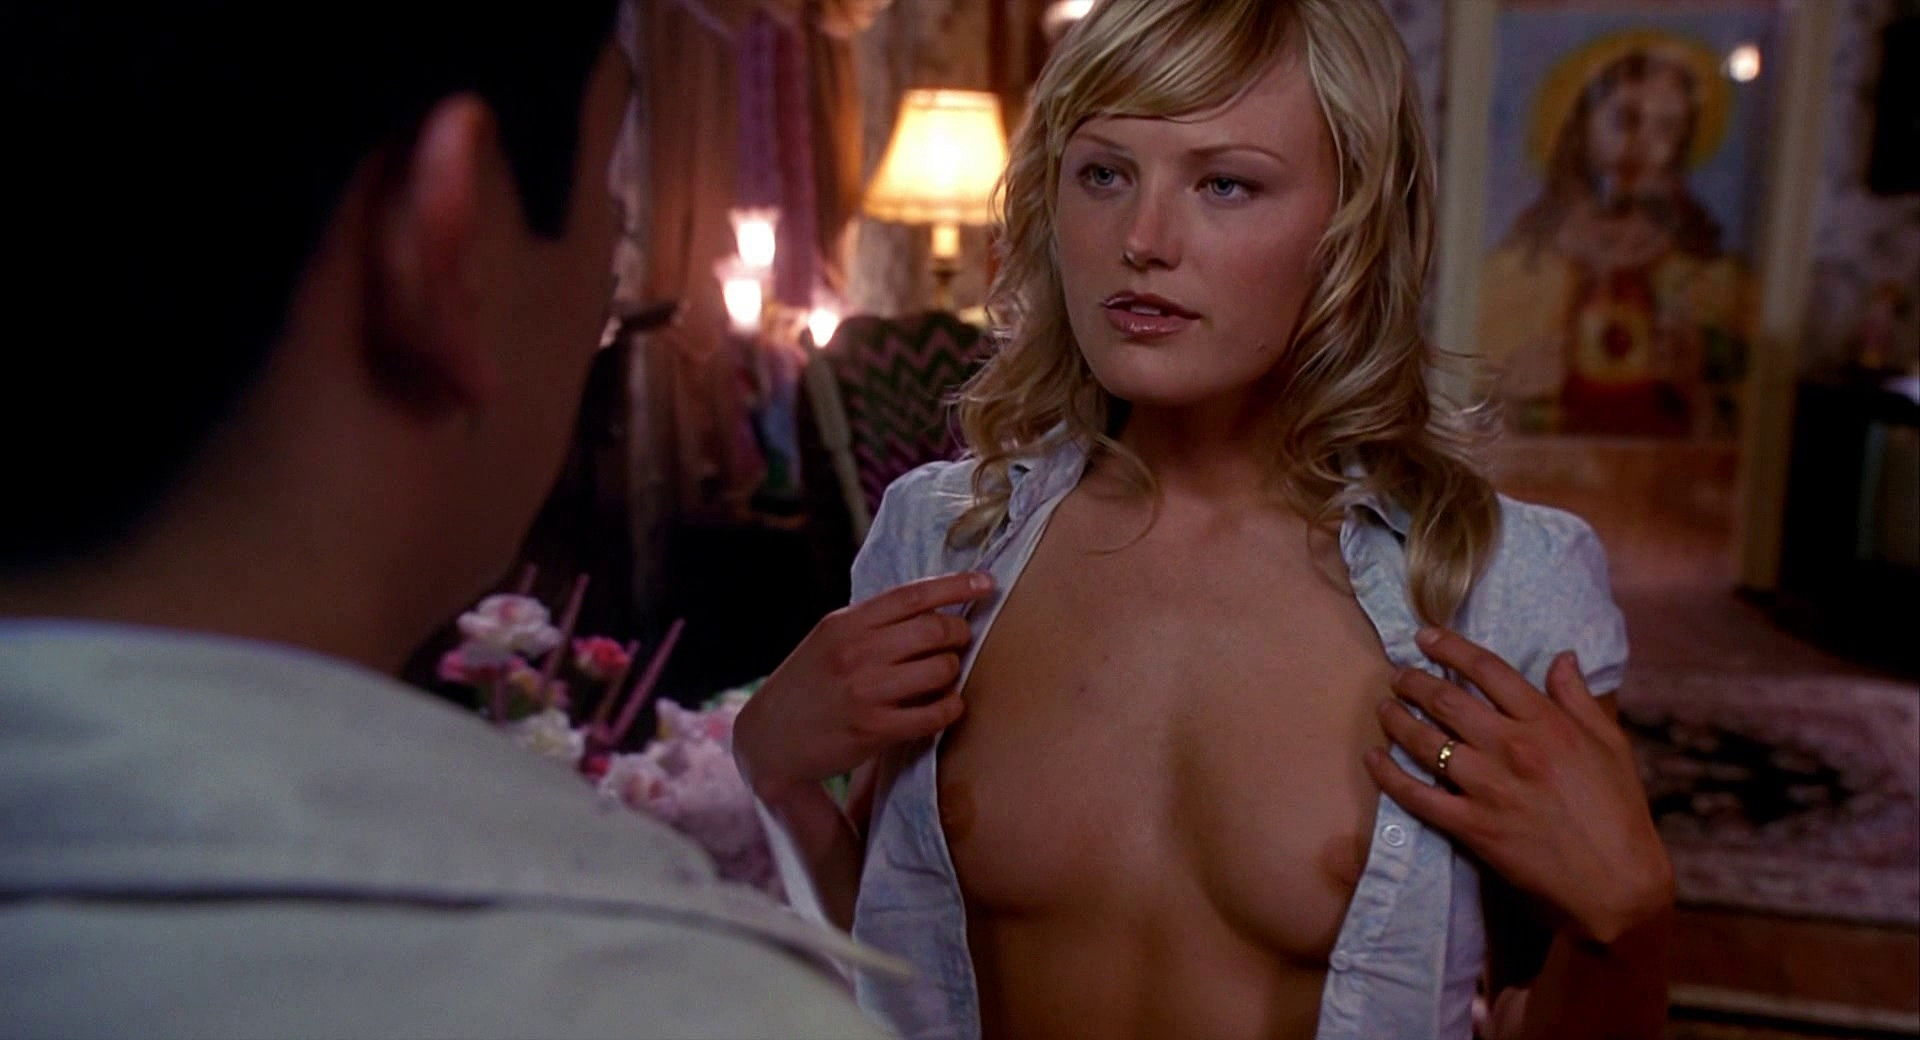 Malin akerman nude, topless pictures, playboy photos, sex scene uncensored